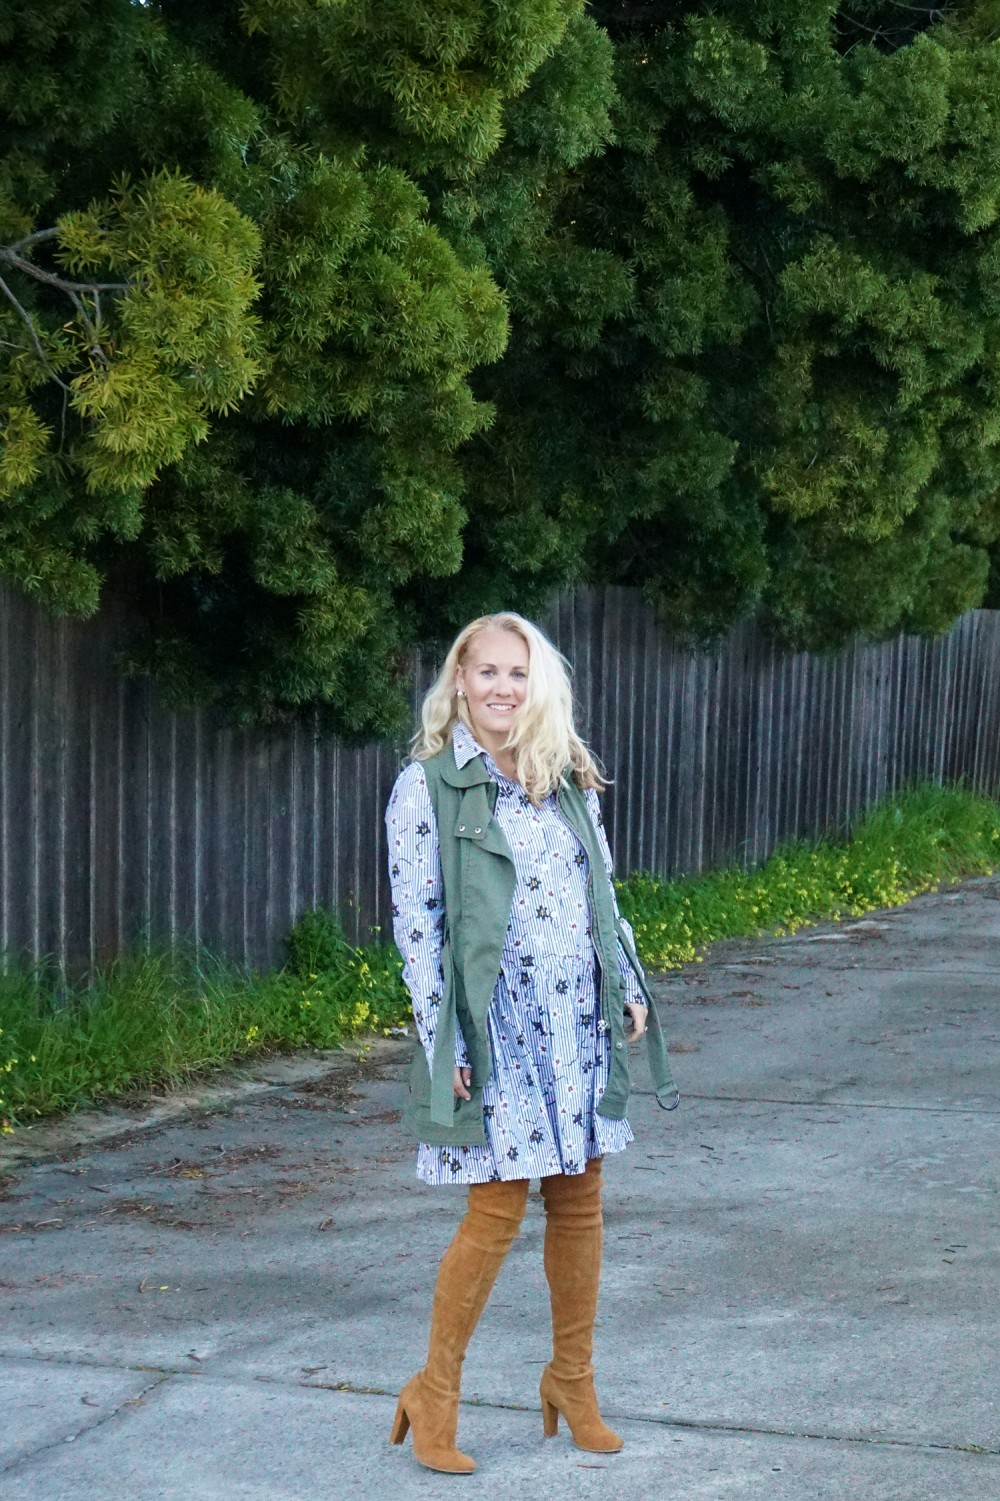 Opening Ceremony Pinstripe and Floral Shirtdress-Spring Style-Outfit Inspiration-Bay Area Fashion Blogger-Stuart Weitzman-Highland Boots-Have Need Want 9